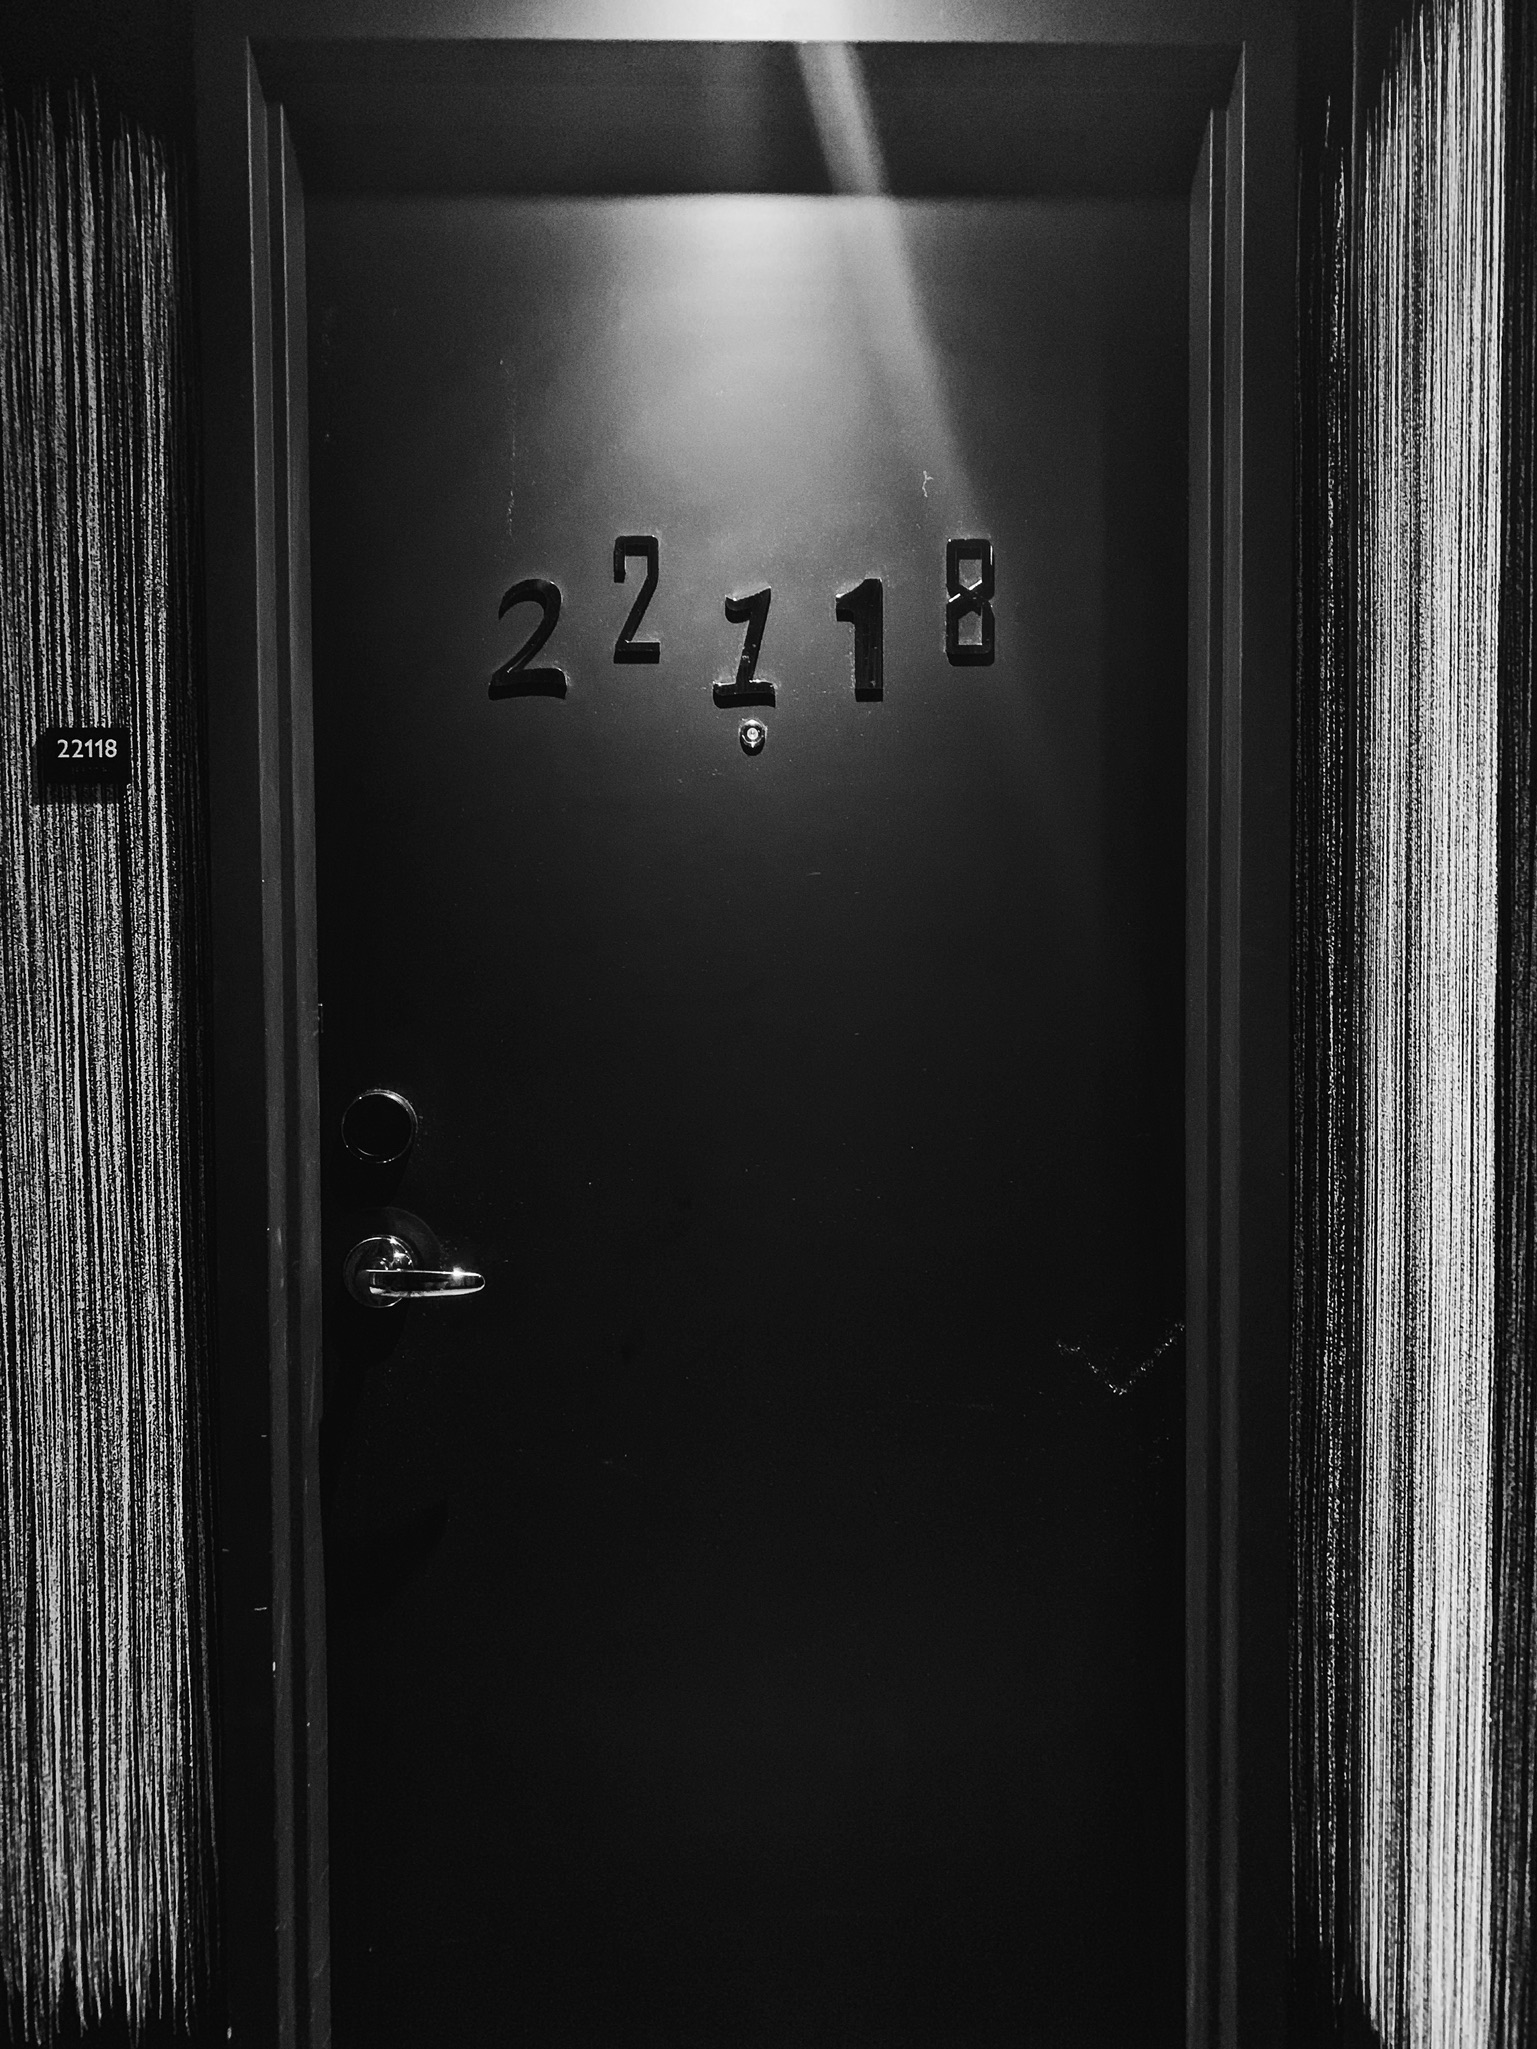 And if you are a MFM (My favorite Murder) Fan, you would flip out when you saw the doors. Surely you can see why.